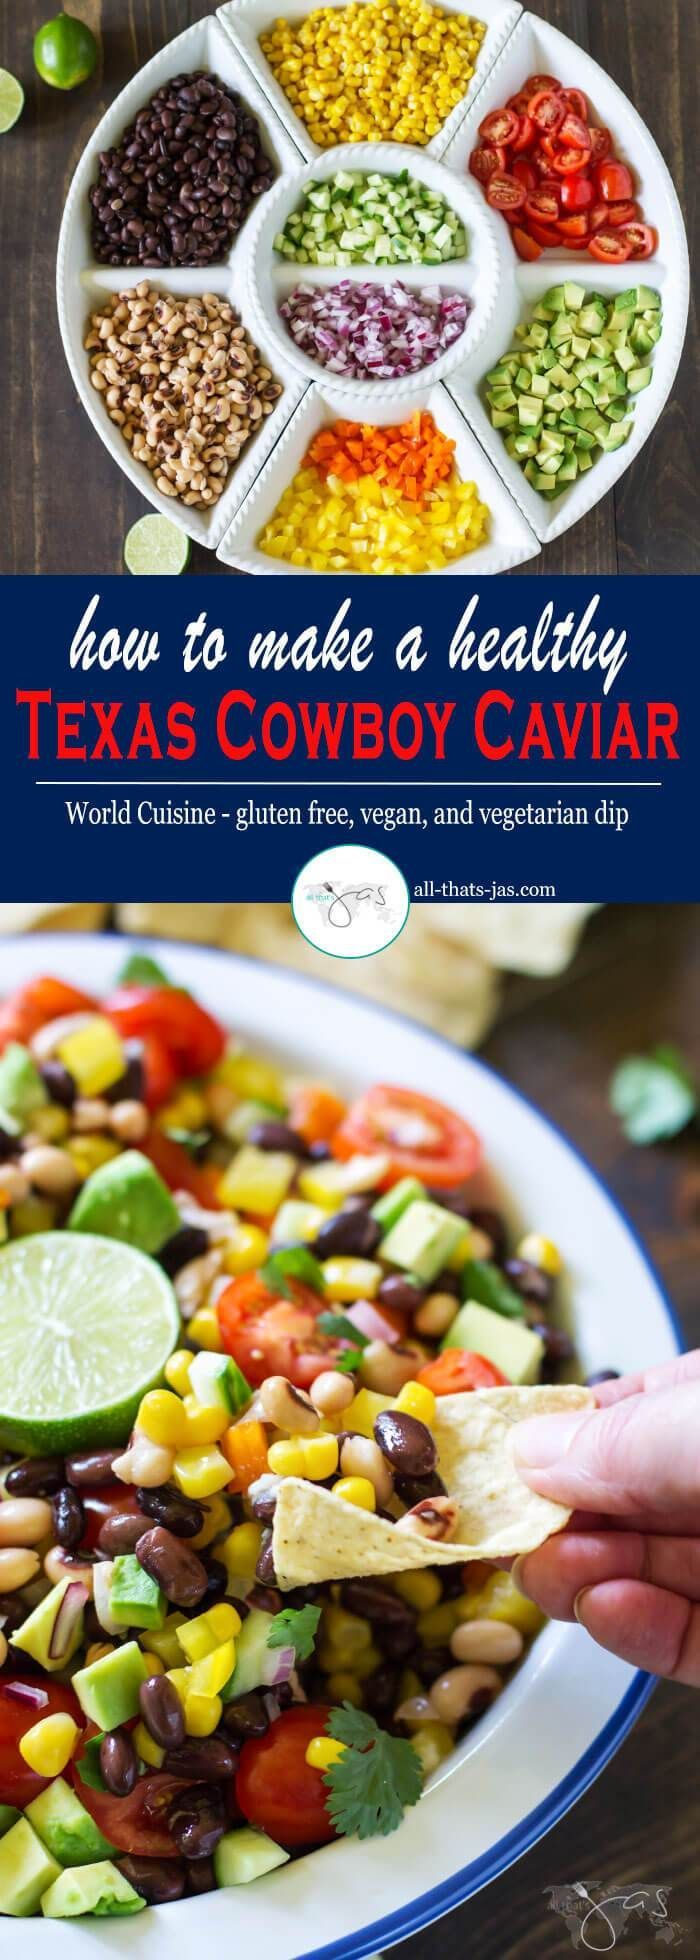 This gluten free, vegan, and vegetarian Texas cowboy caviar recipe is a perfect solution for a healthy dip that is quick to make and feeds a crowd. Mix together black beans, black eyed peas, corn, tomatoes, peppers, onions, avocado, cucumber, and cilantro